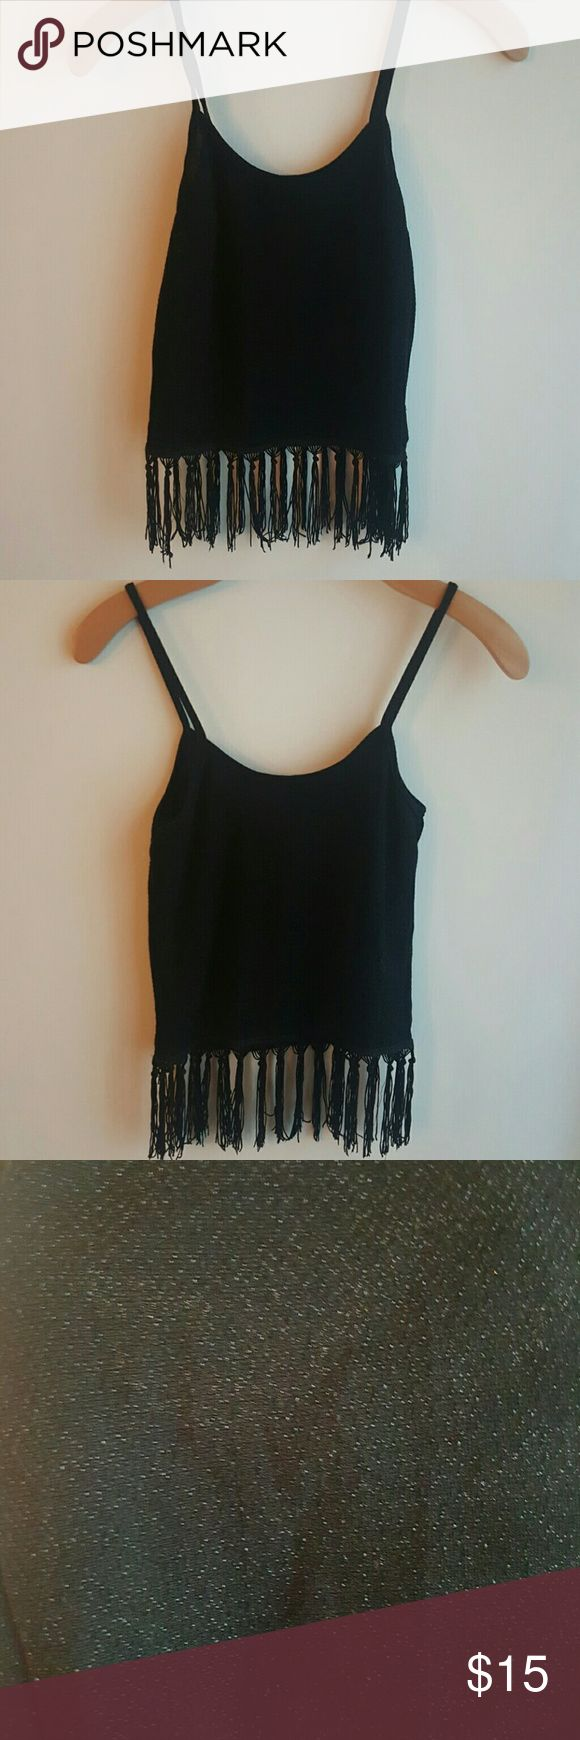 Festival Crop Top Black shimmery festival crop top never worn! With tassle detail. Without tags. Tops Tank Tops